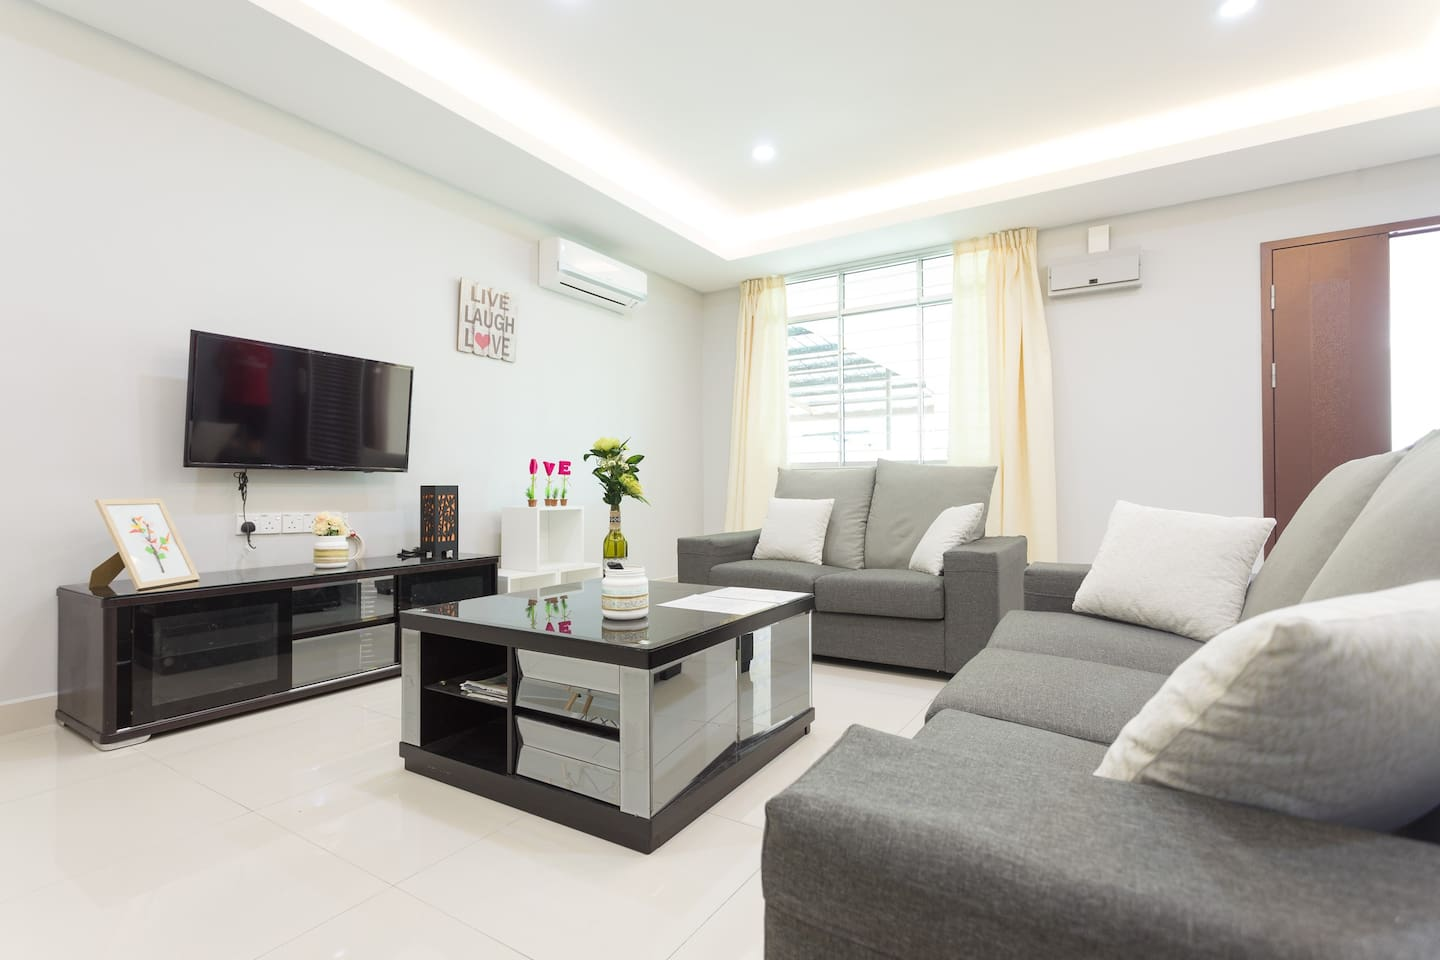 Our 35 square meter living room will make sure everyone able to gather and have fun together. 宽敞,舒适的大厅都具备应有的东西(转换插头,吹风机)。